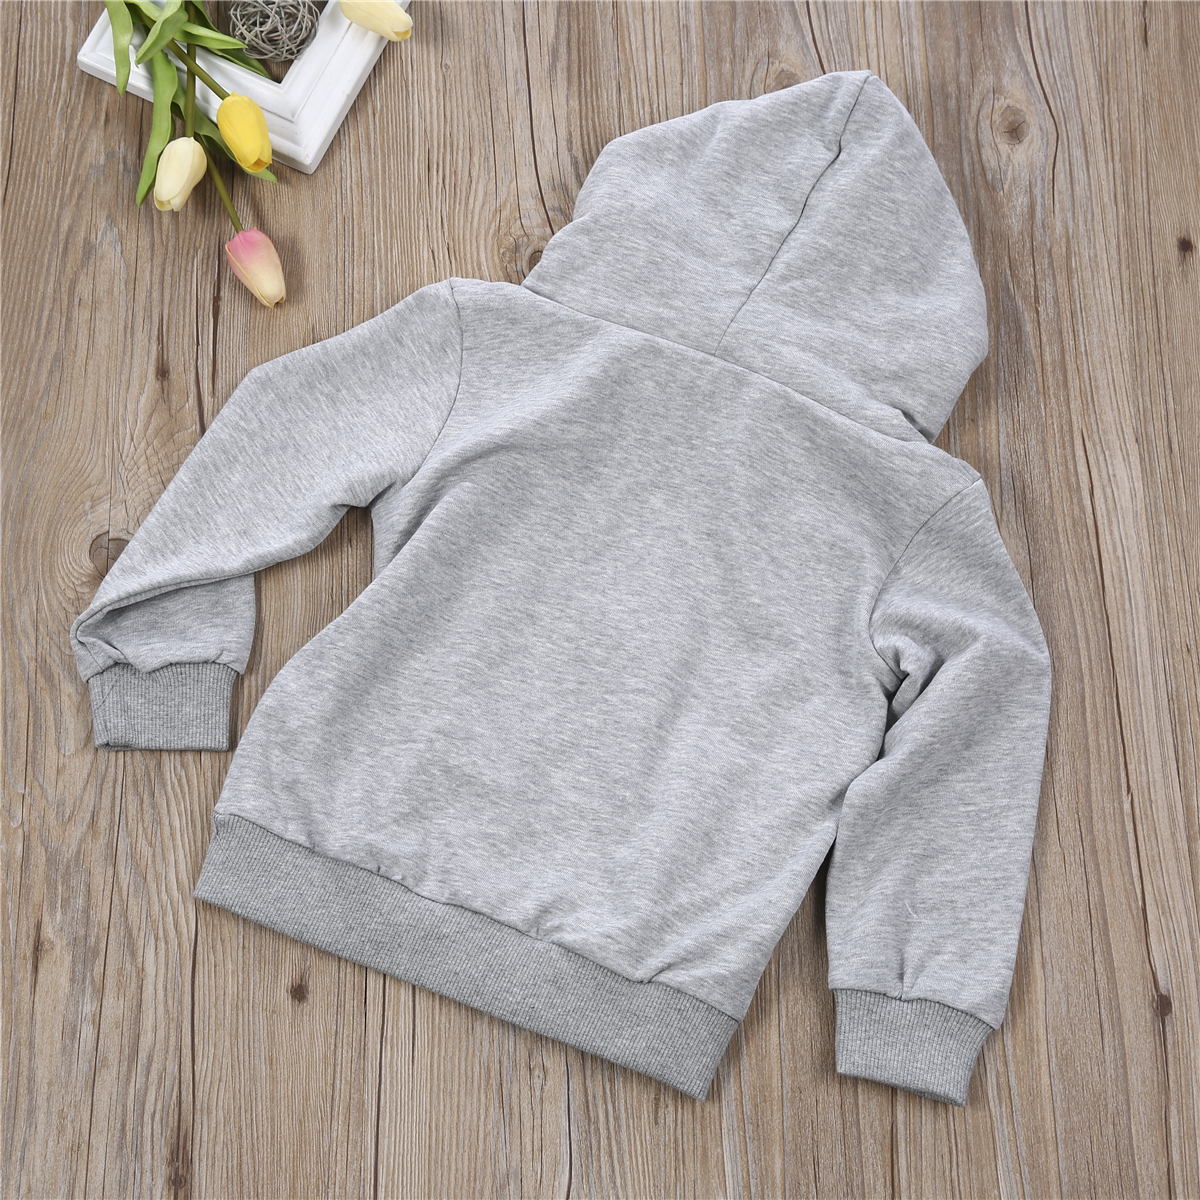 Hoodies Sweatshirts Jacket Pullover Outwear Thick Baby-Boys Kids' Fashion for Coat Tops